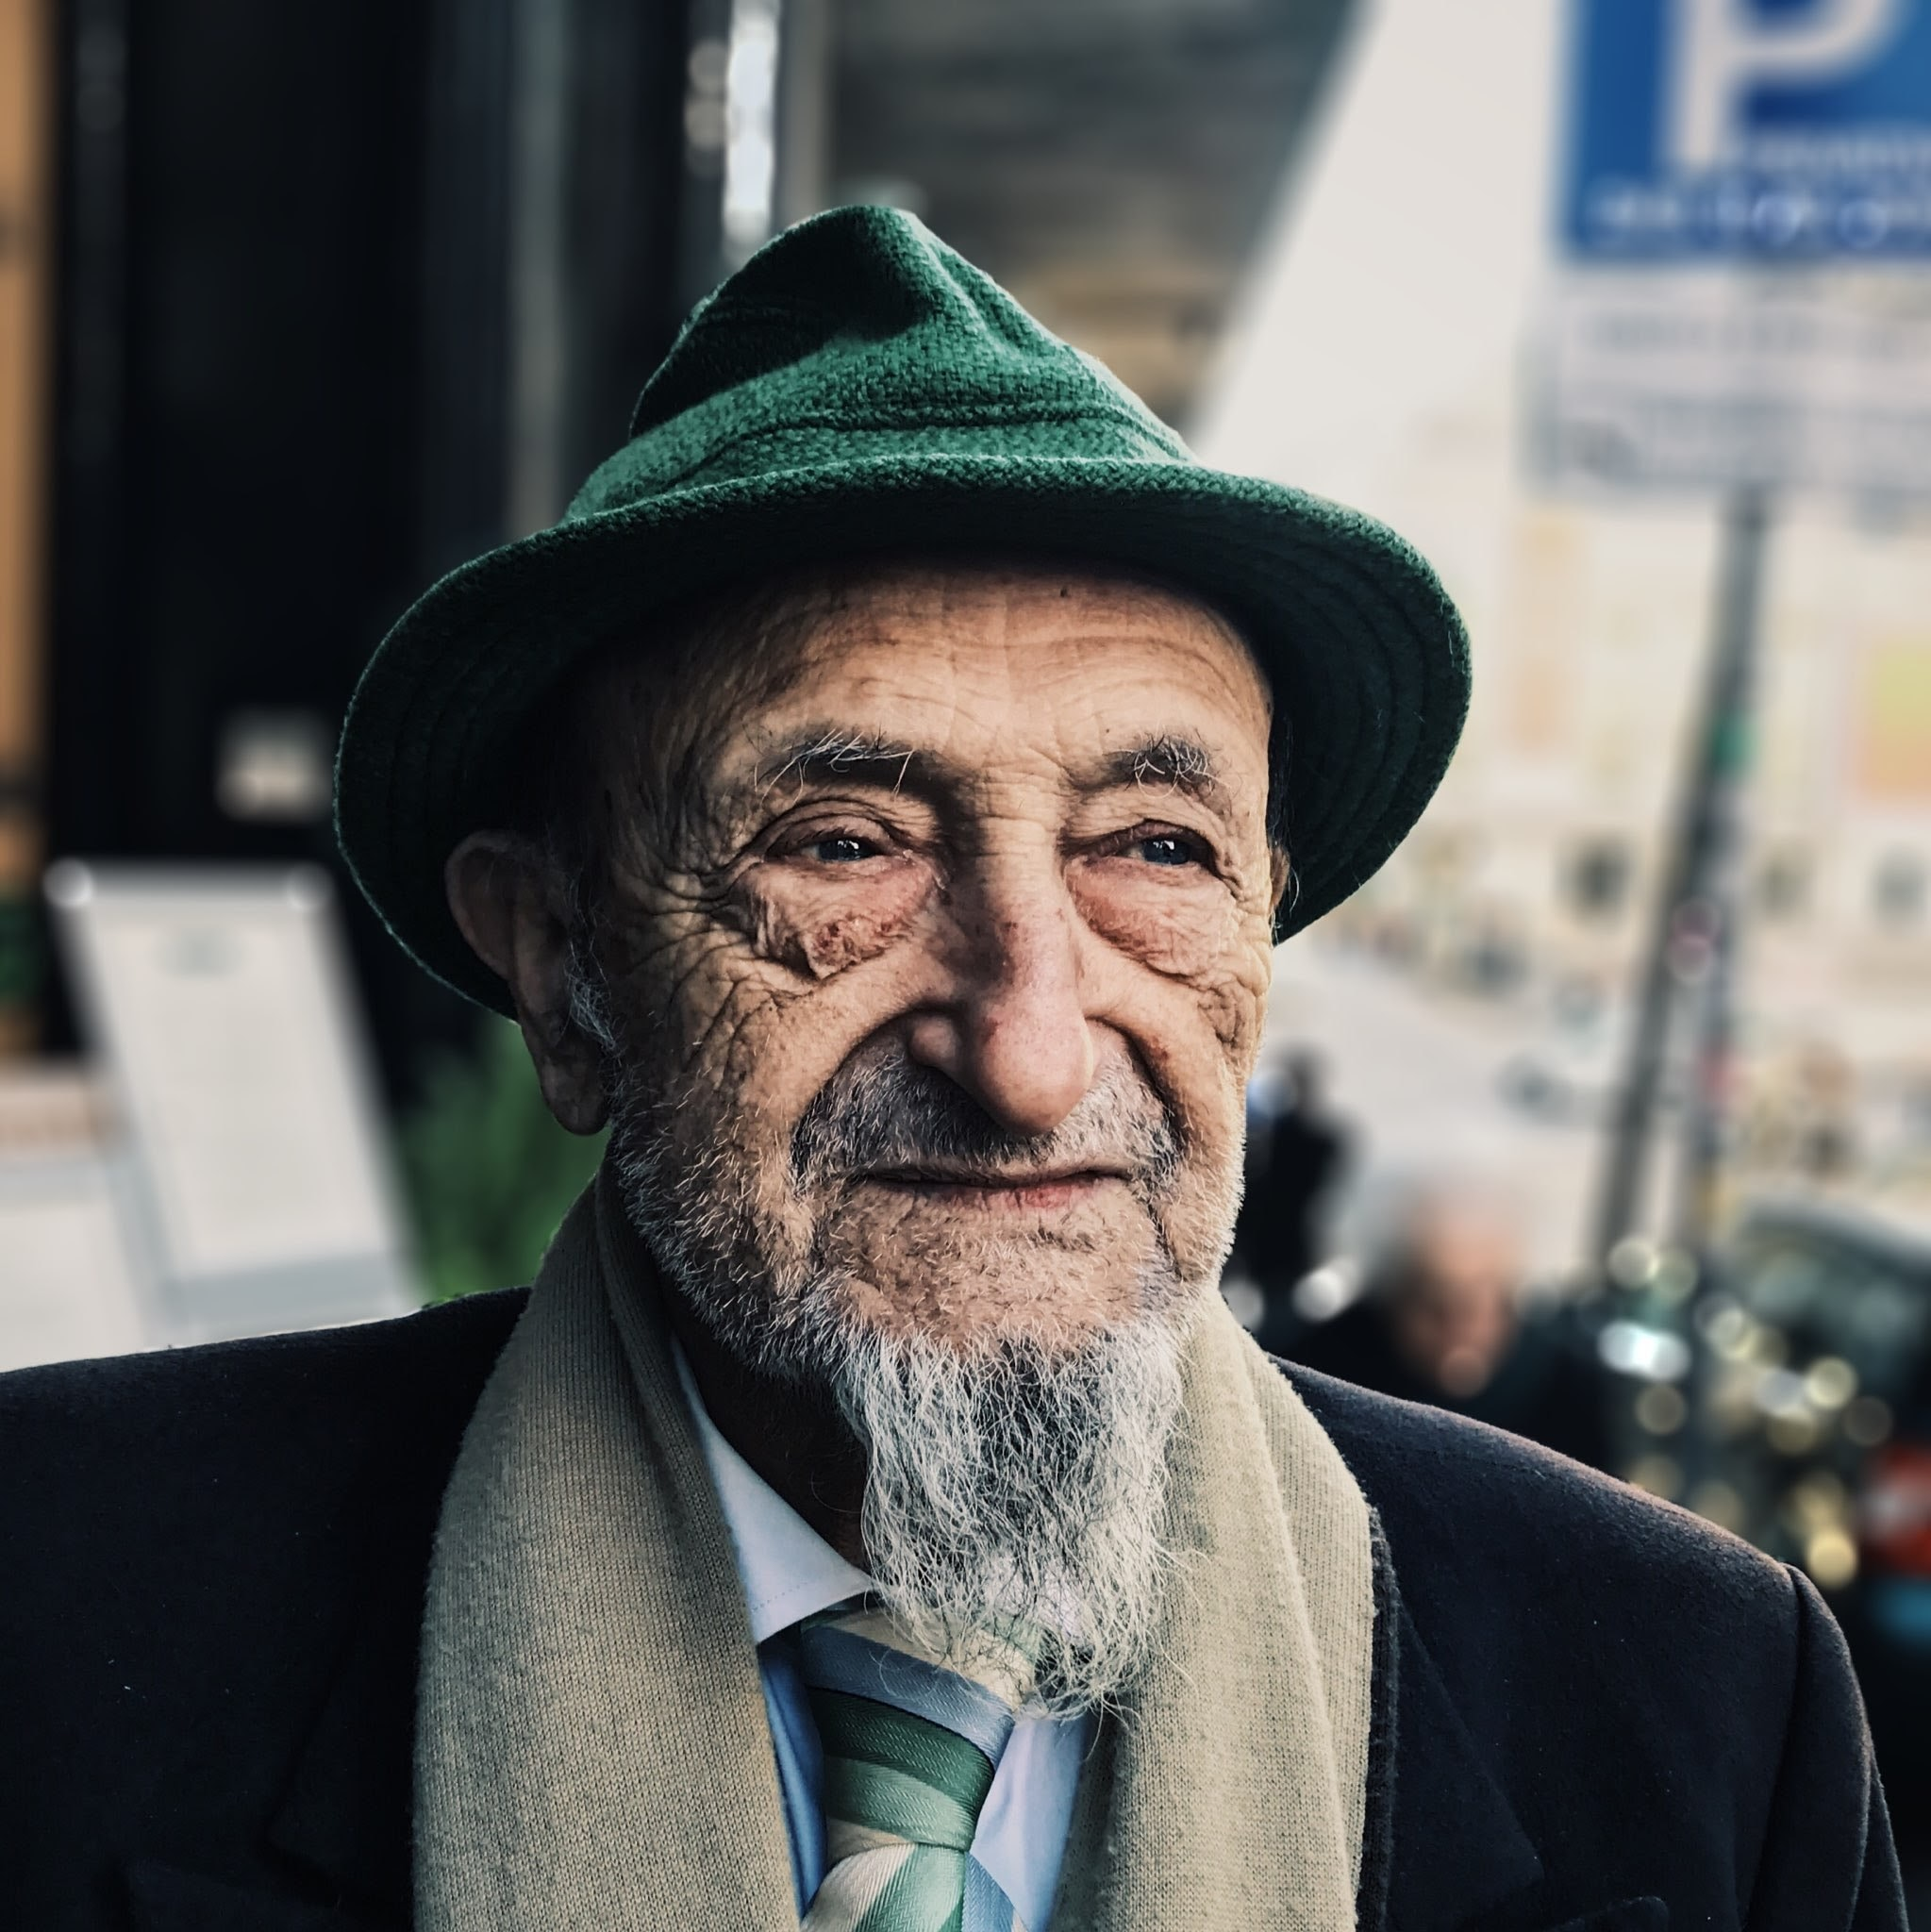 man wearing green hat during daytime